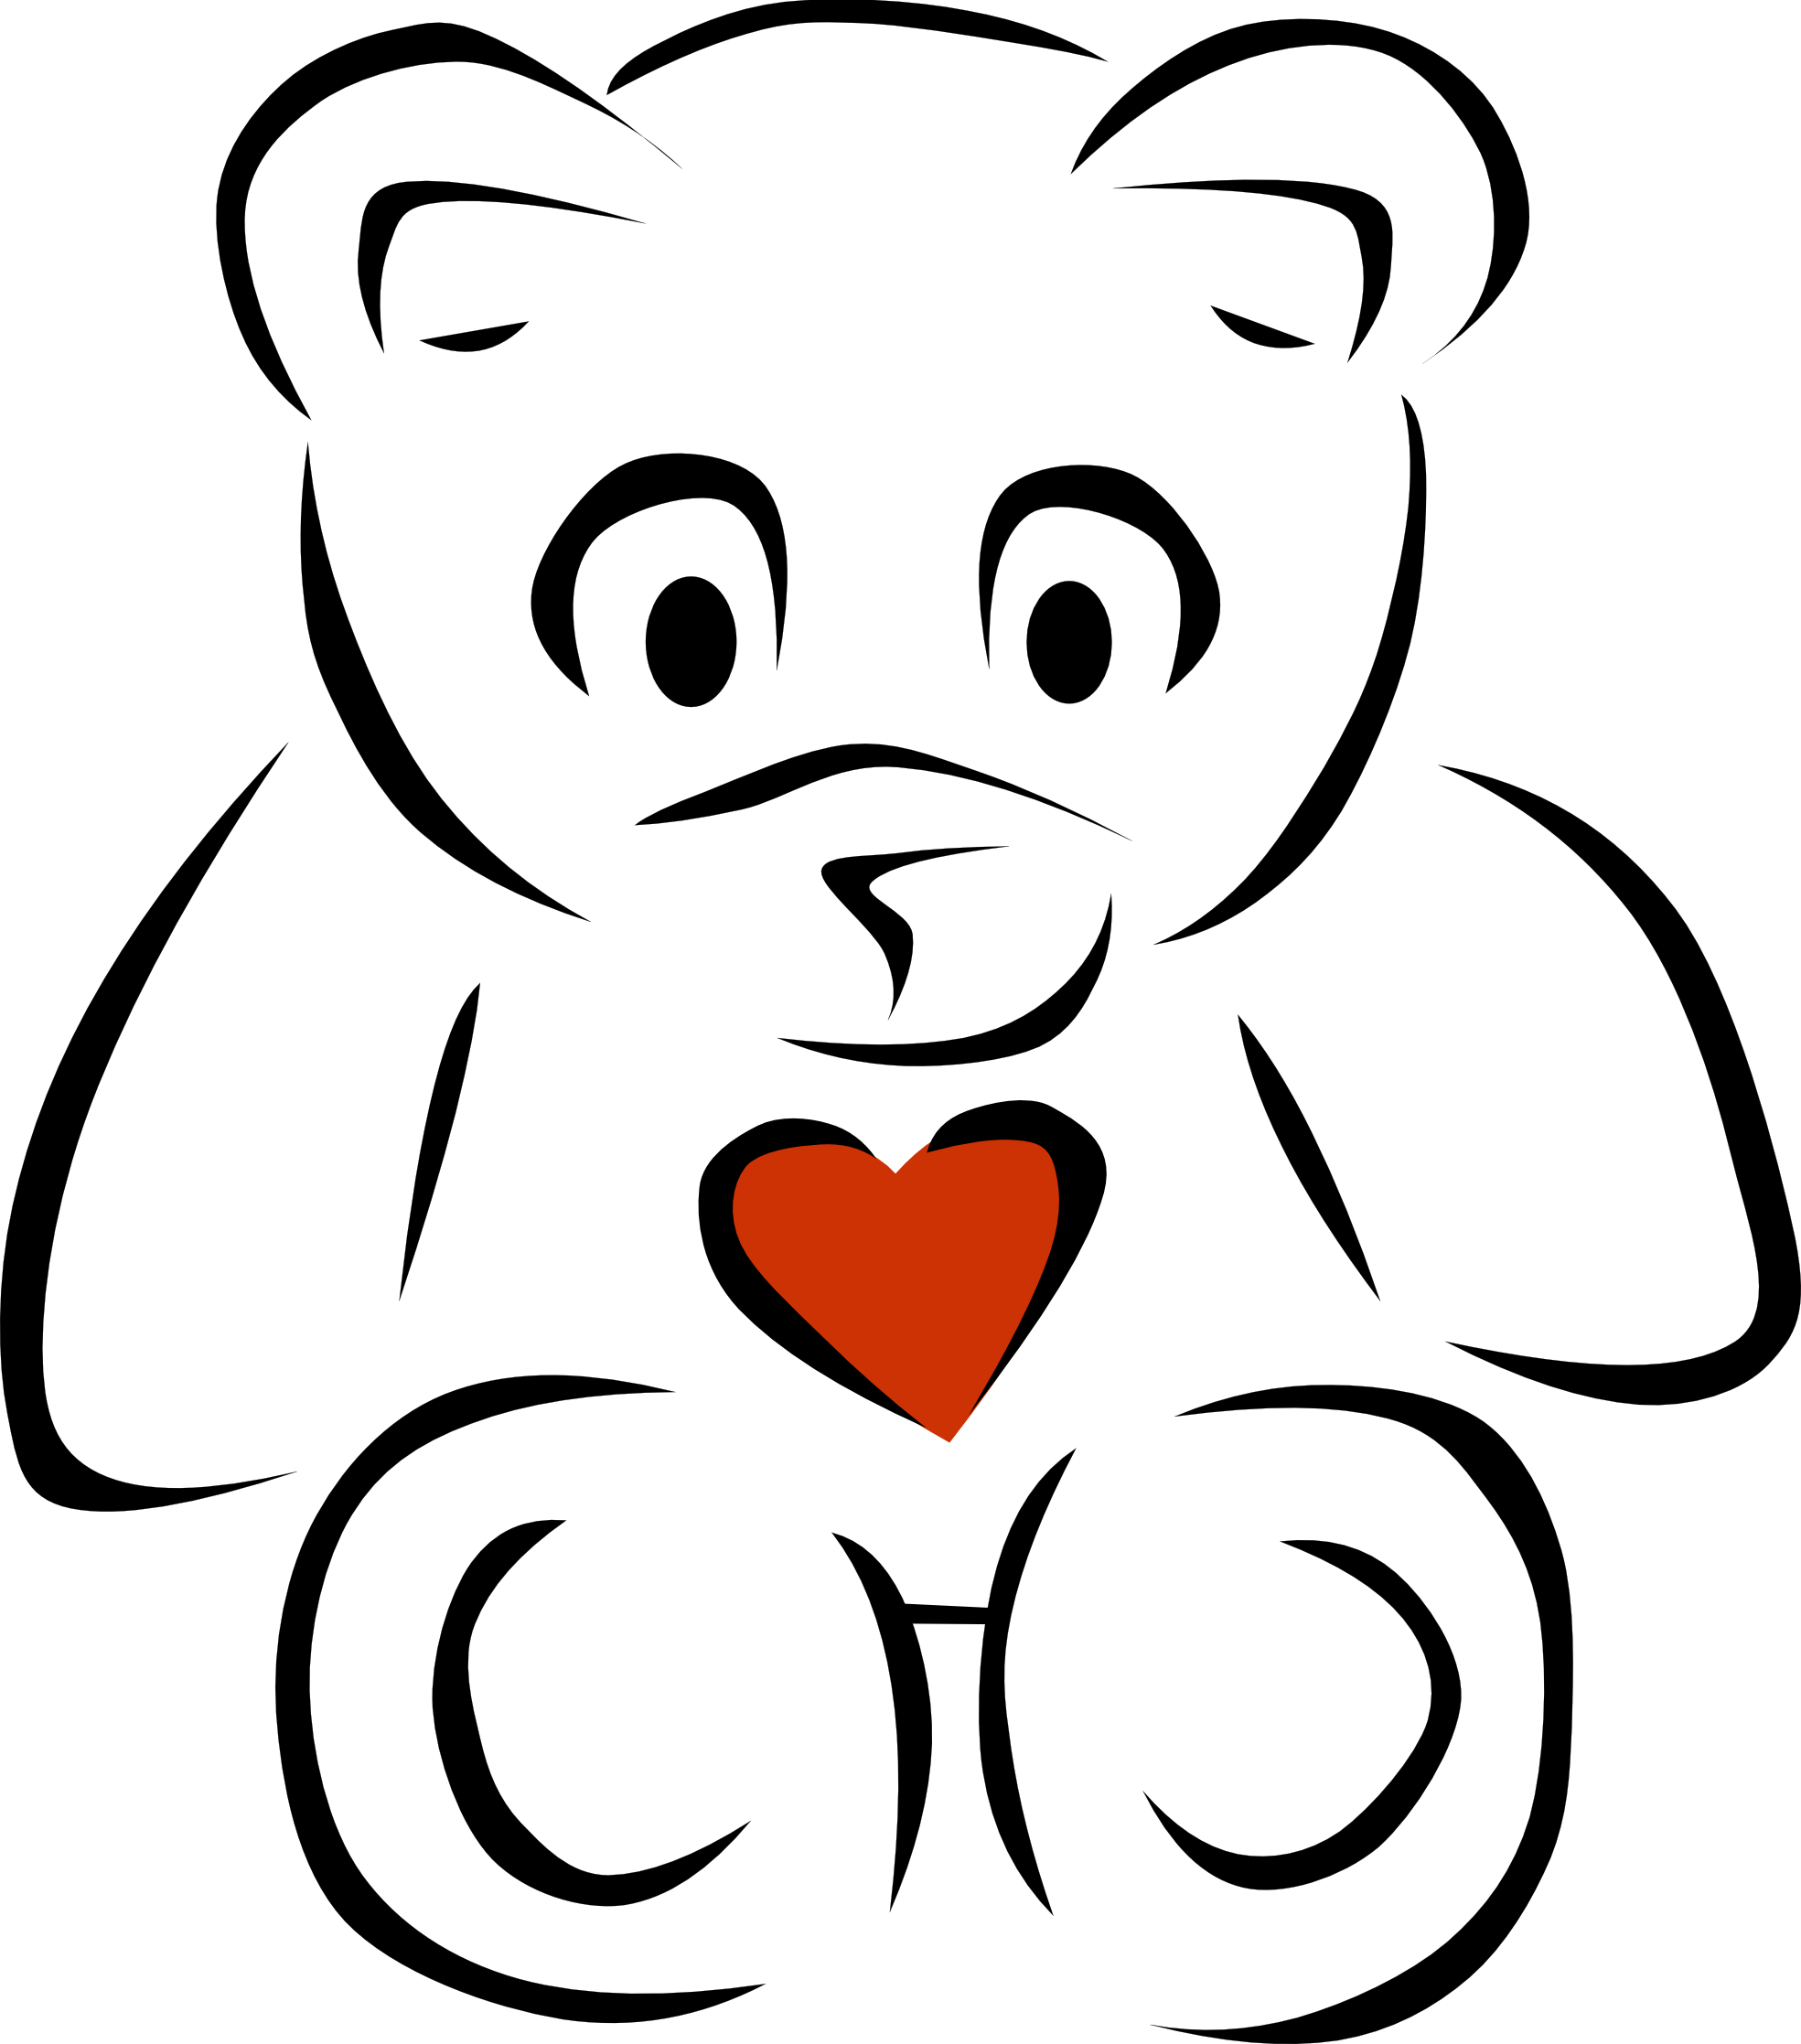 Clipart Heart Black And White | Clipart Panda - Free Clipart